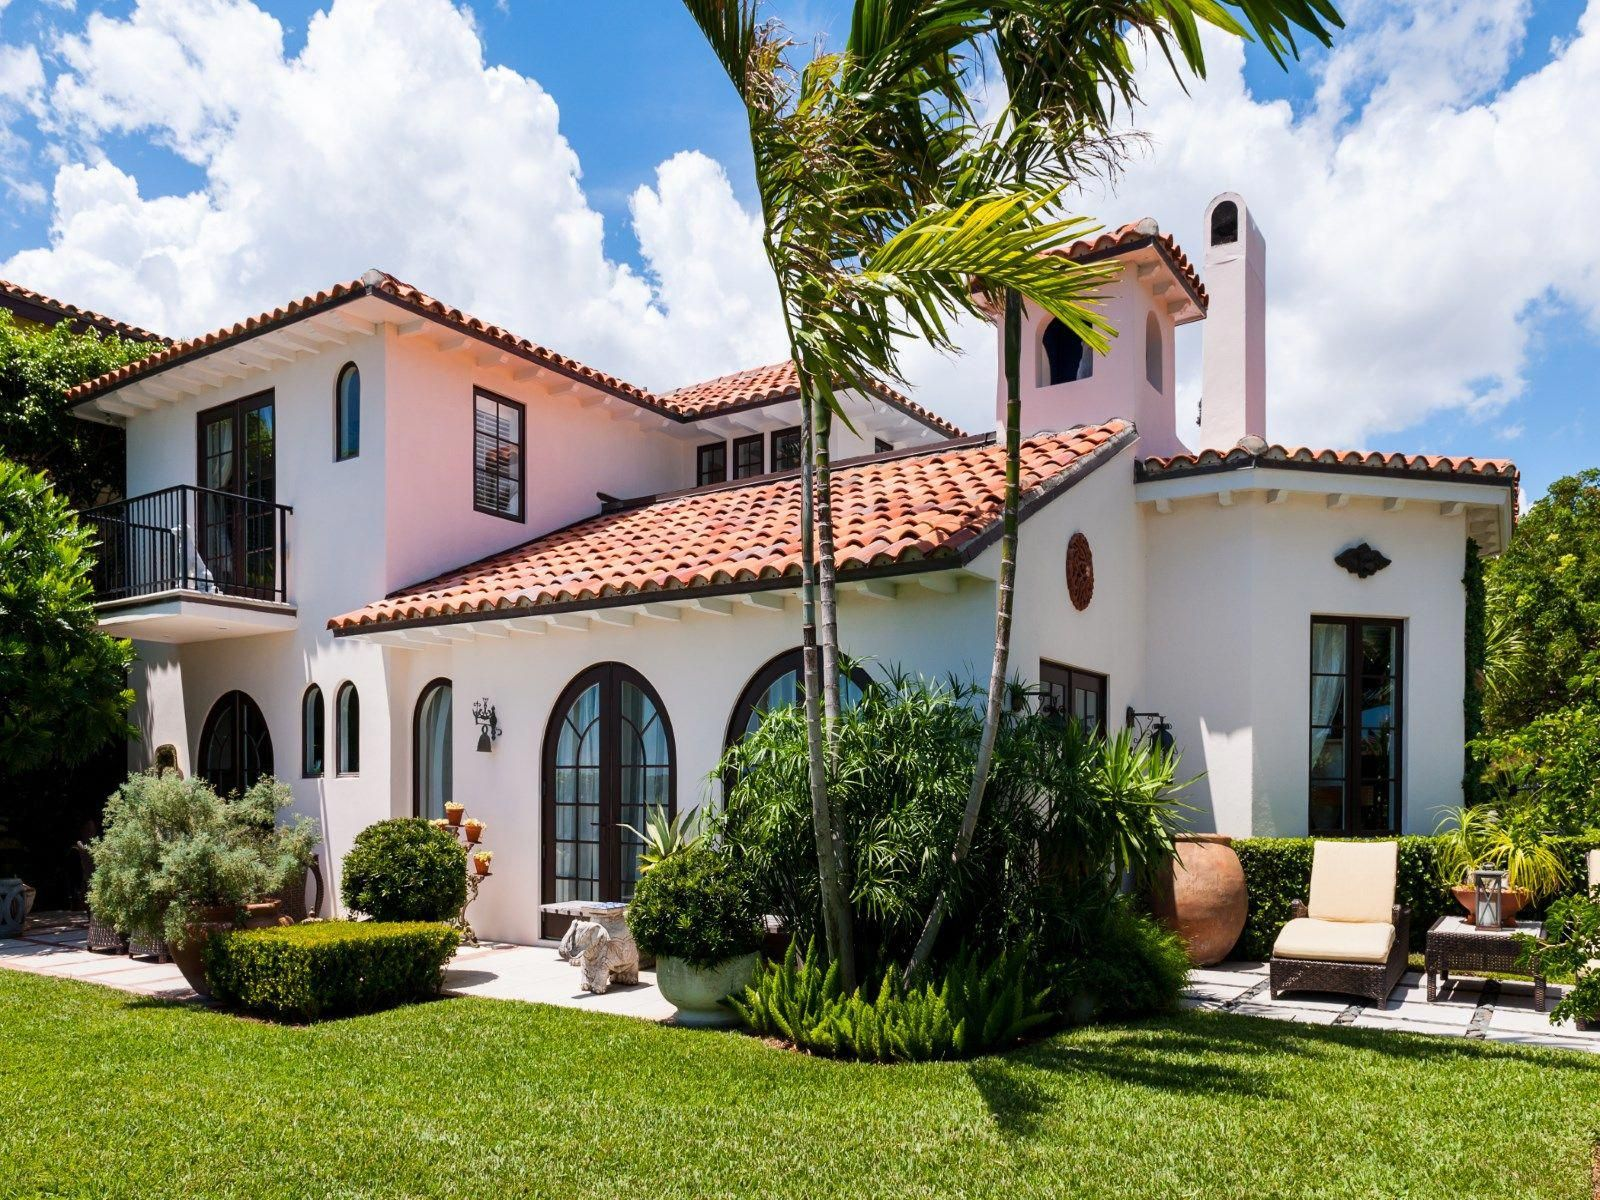 Spanish Style Homes For Sale Los Angeles Spanishstylehomes Mediterranean Homes Spanish Style Homes Mediterranean Homes Exterior